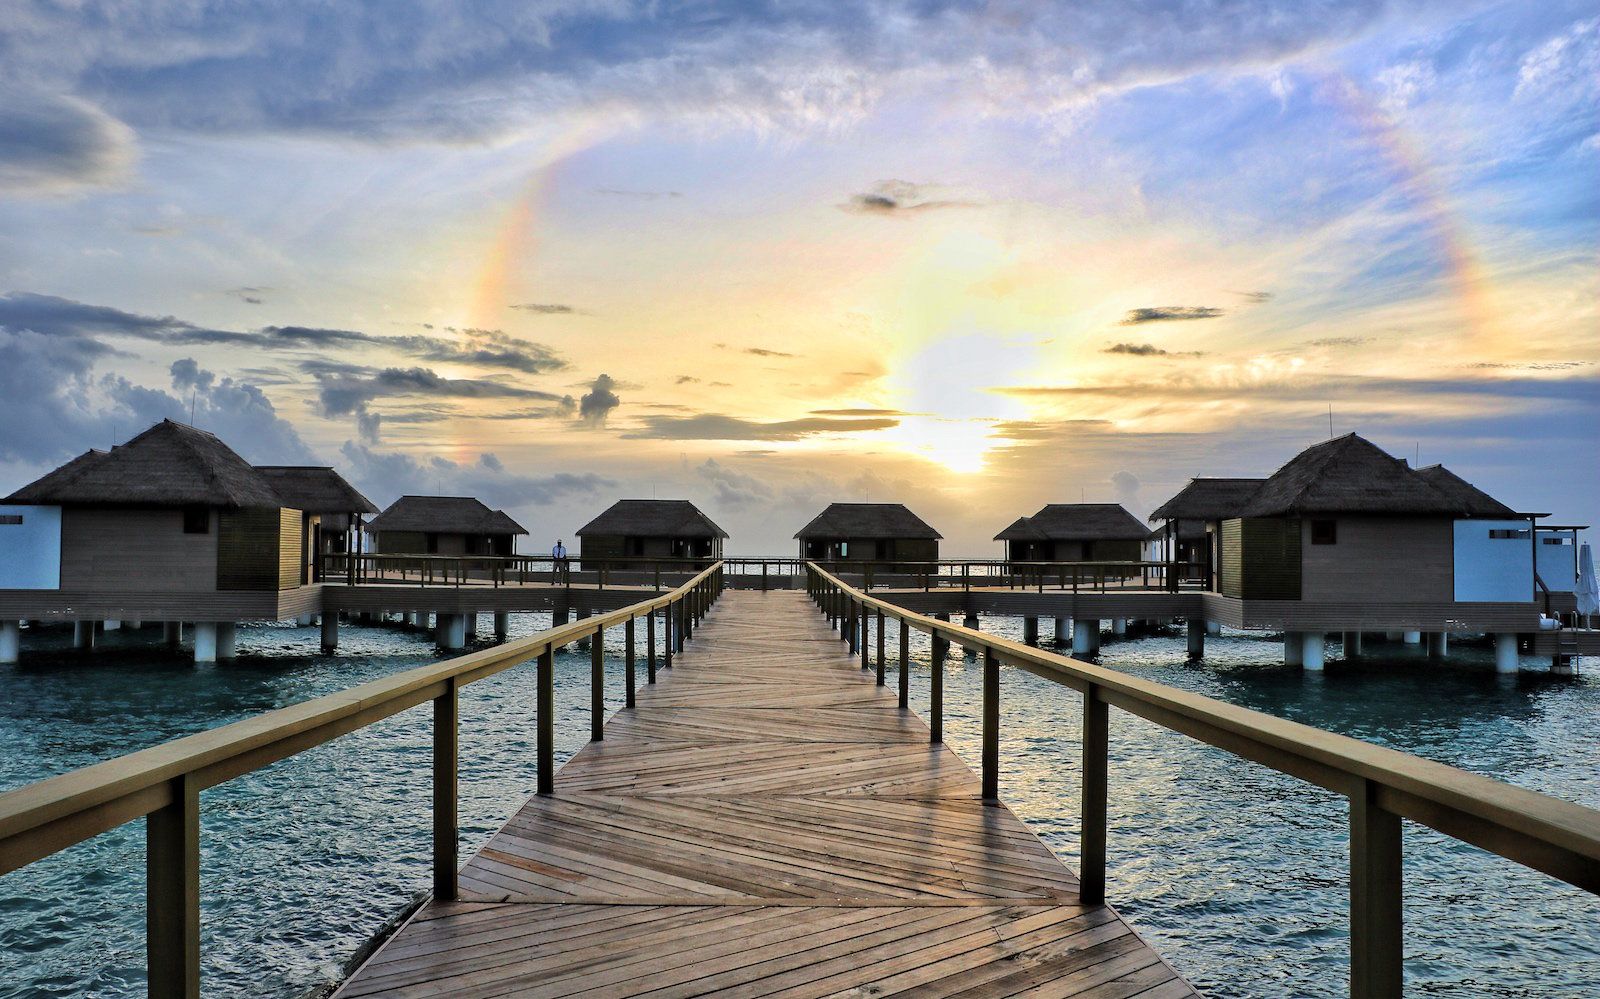 Overwater bungalows at Sandals South Coast Jamaica